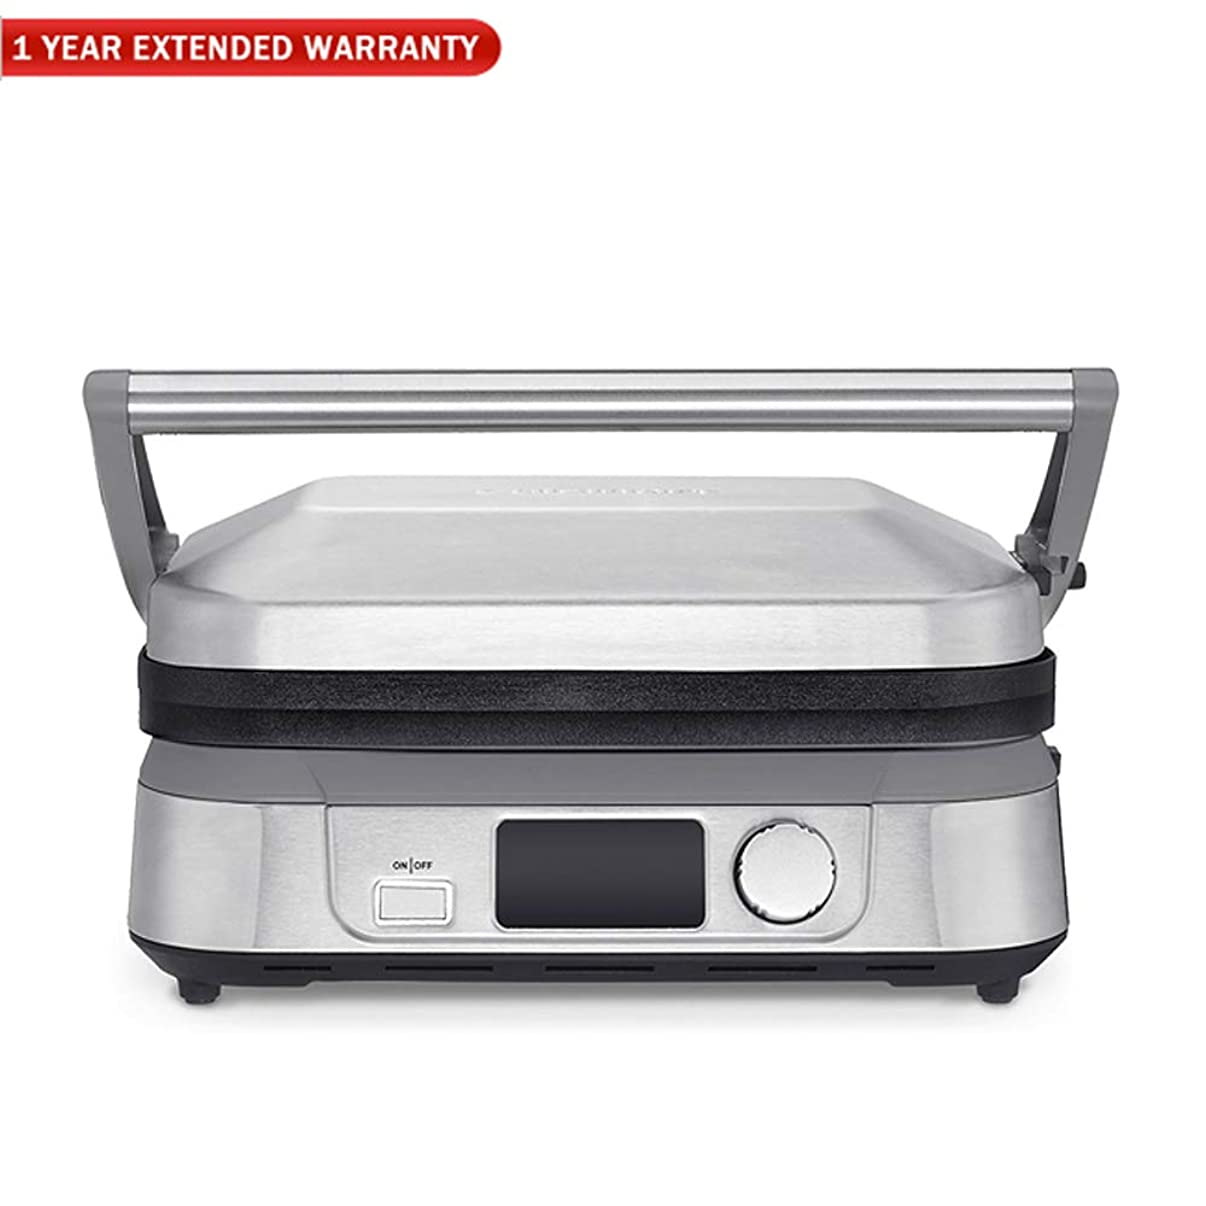 Cuisinart GR-5B Series Griddler Five with 1 Year Extended Warranty